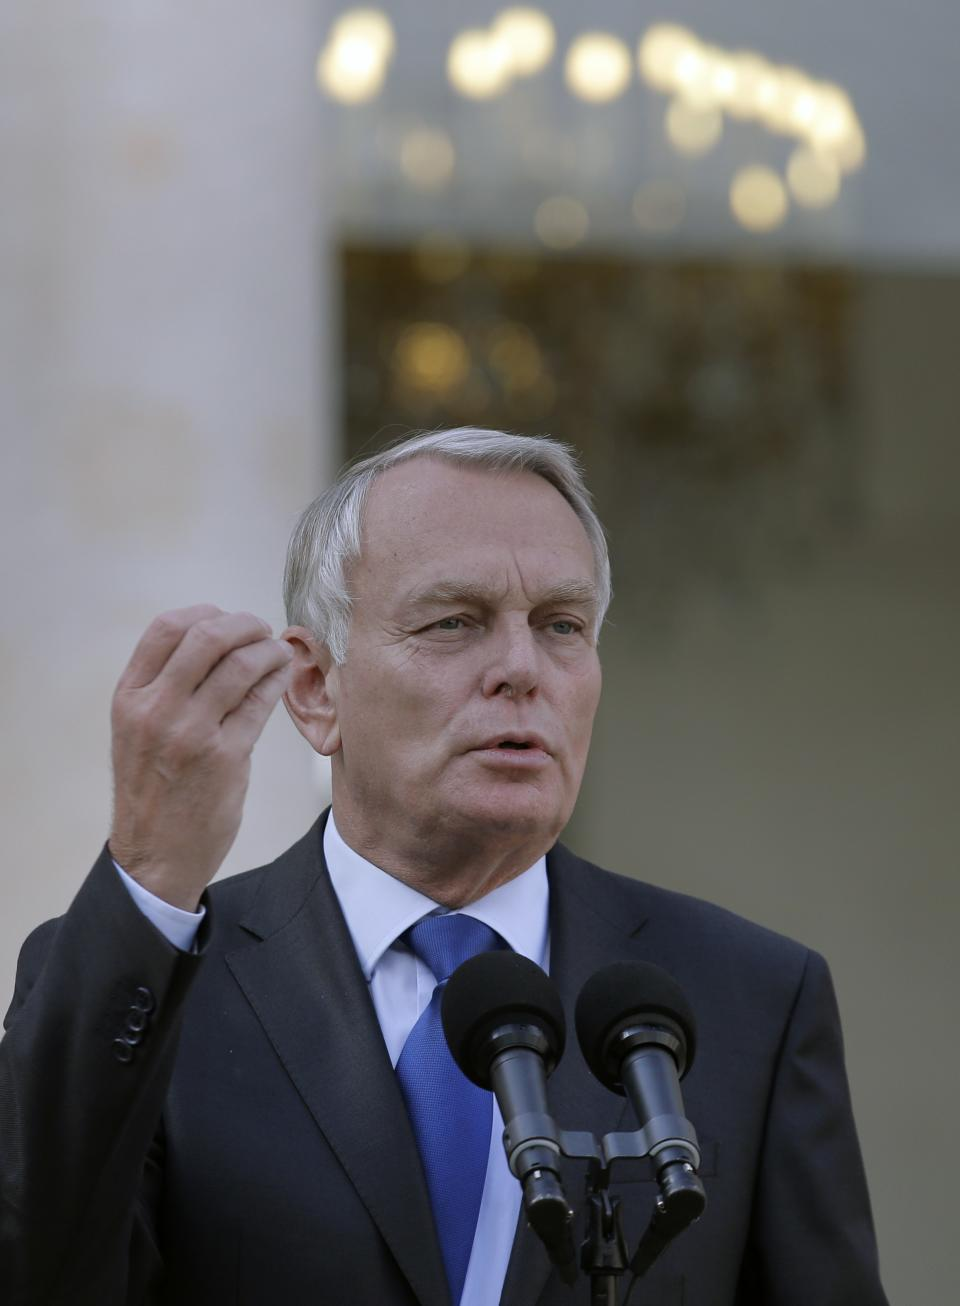 France's Prime Minister Jean-Marc Ayrault speaks to journalists after the weekly cabinet meeting at the Elysee Palace in Paris, Friday, Sept. 28, 2012. The French government aims to tackle the country's deficit and jumpstart its economy when it unveils its budget for next year on Friday. (AP Photo/Christophe Ena)